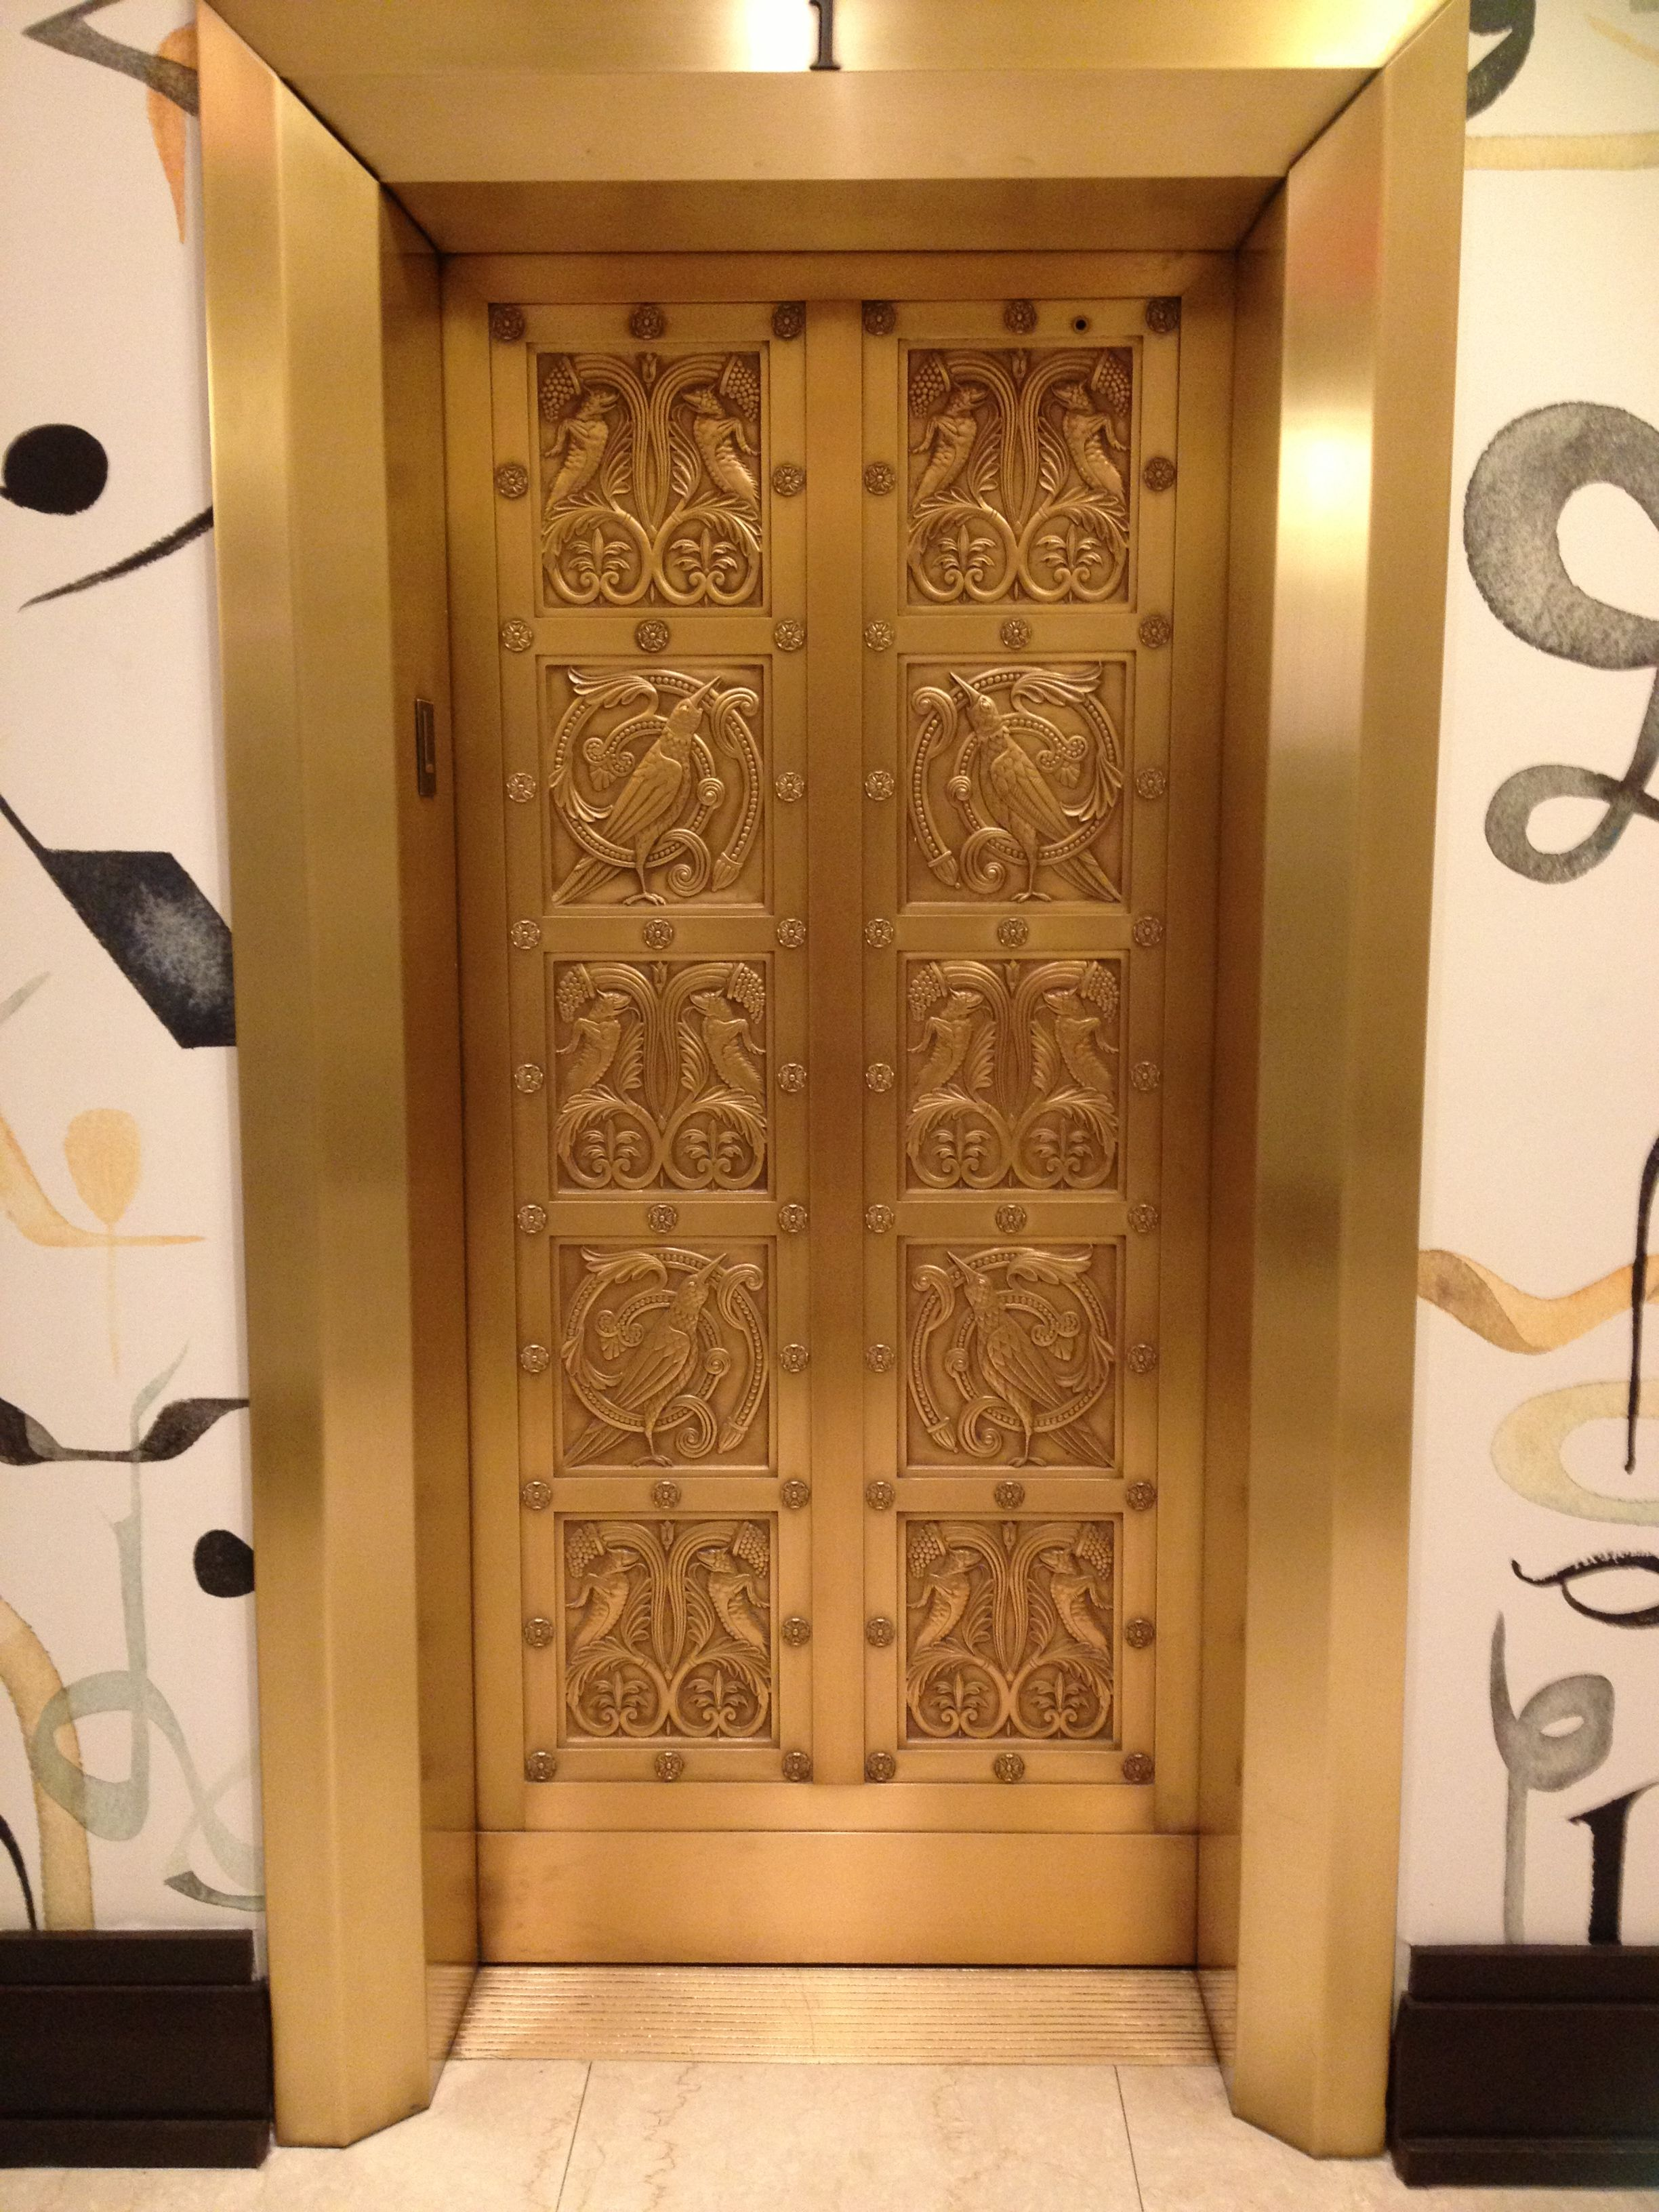 insured miami door b professionals fire and doors licensed july fl phone in service interior i station